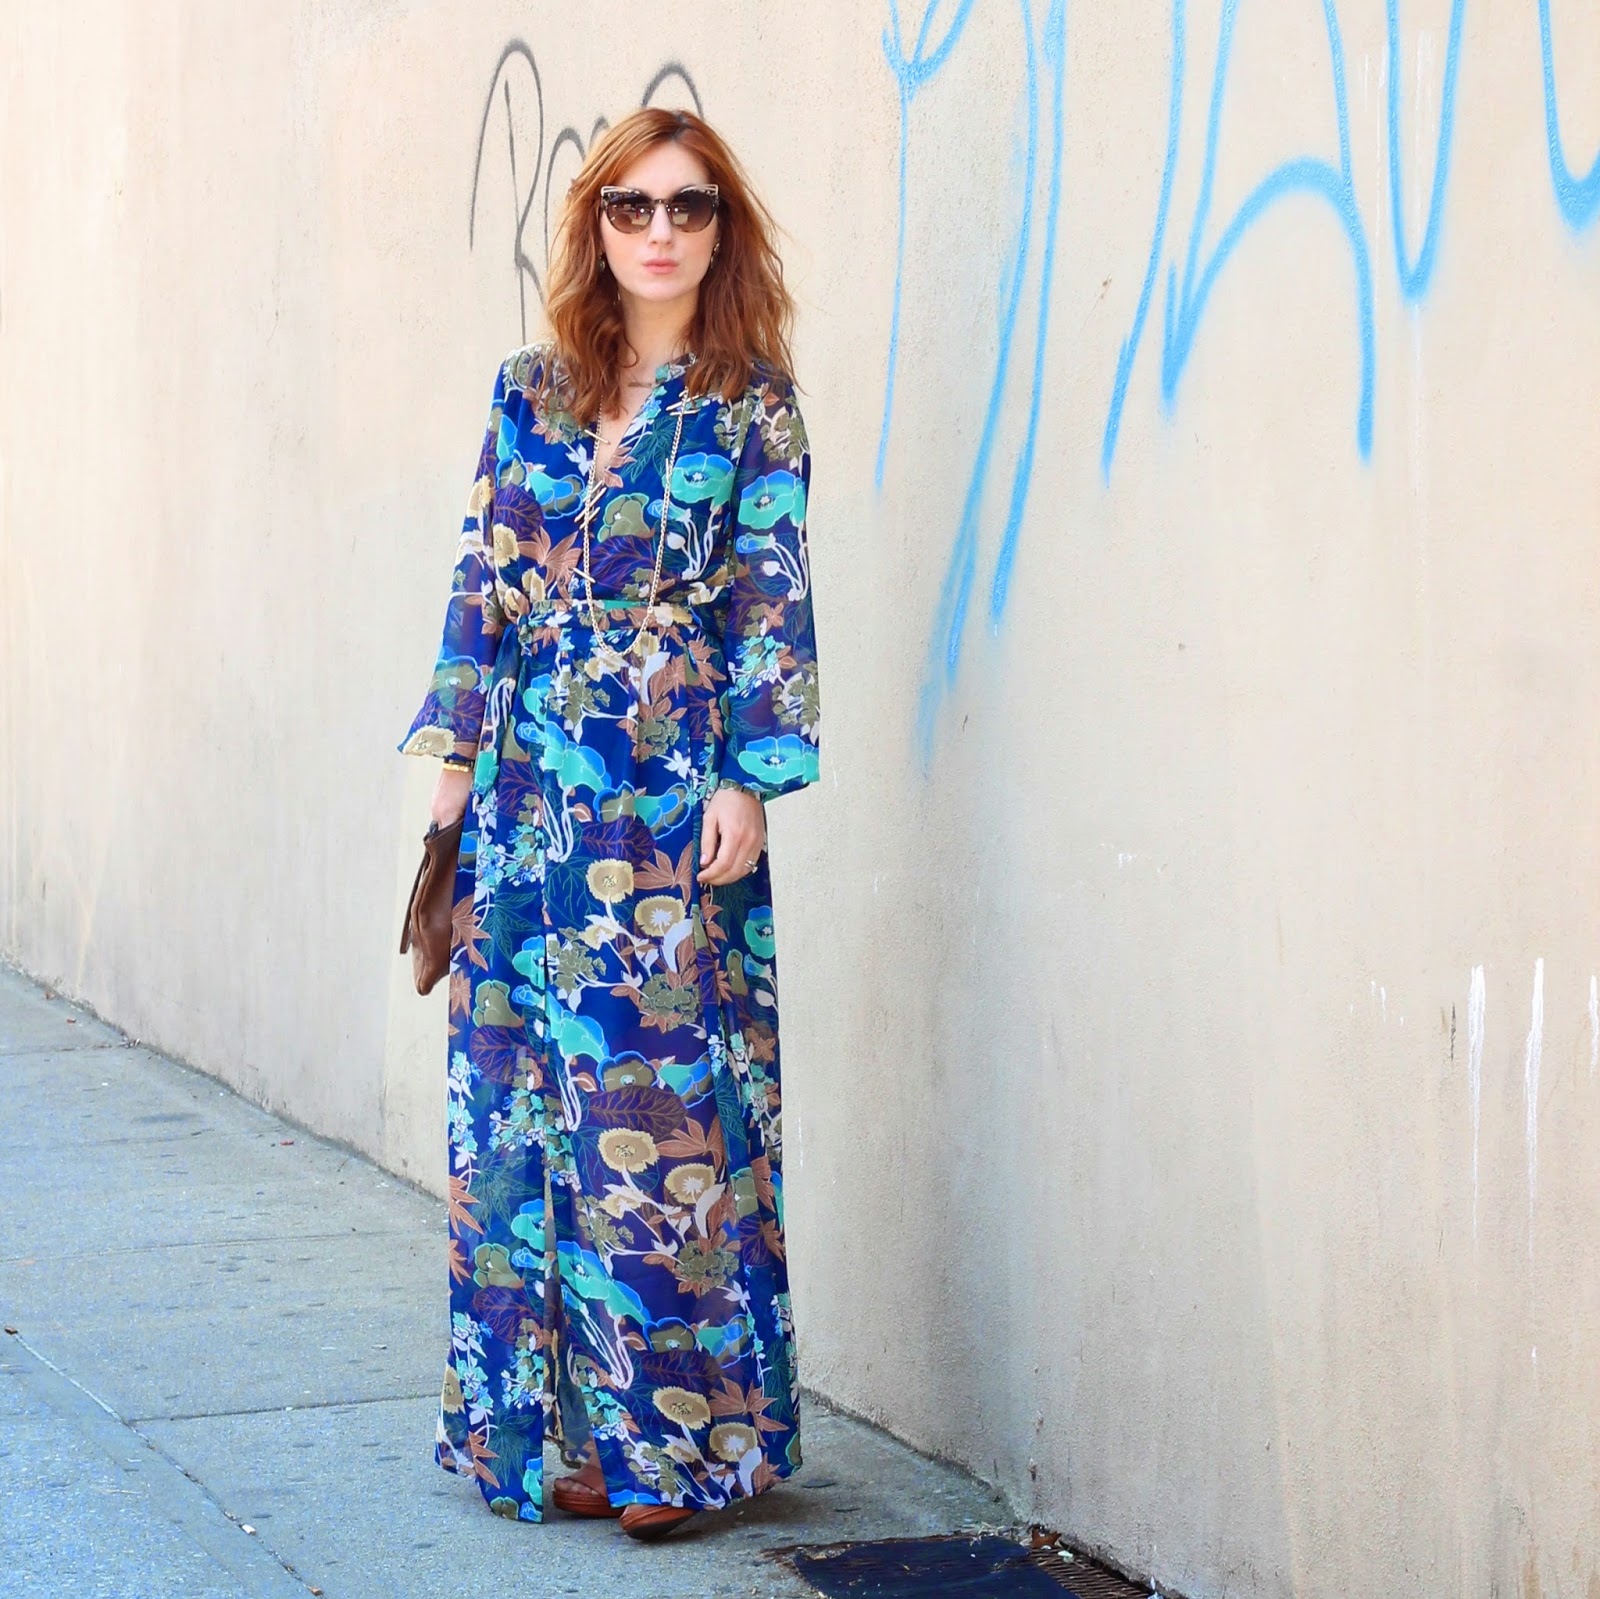 printed maxi dress, H&M blue maxi dress, best maxi dresses for spring 2015, maxi dresses under $50